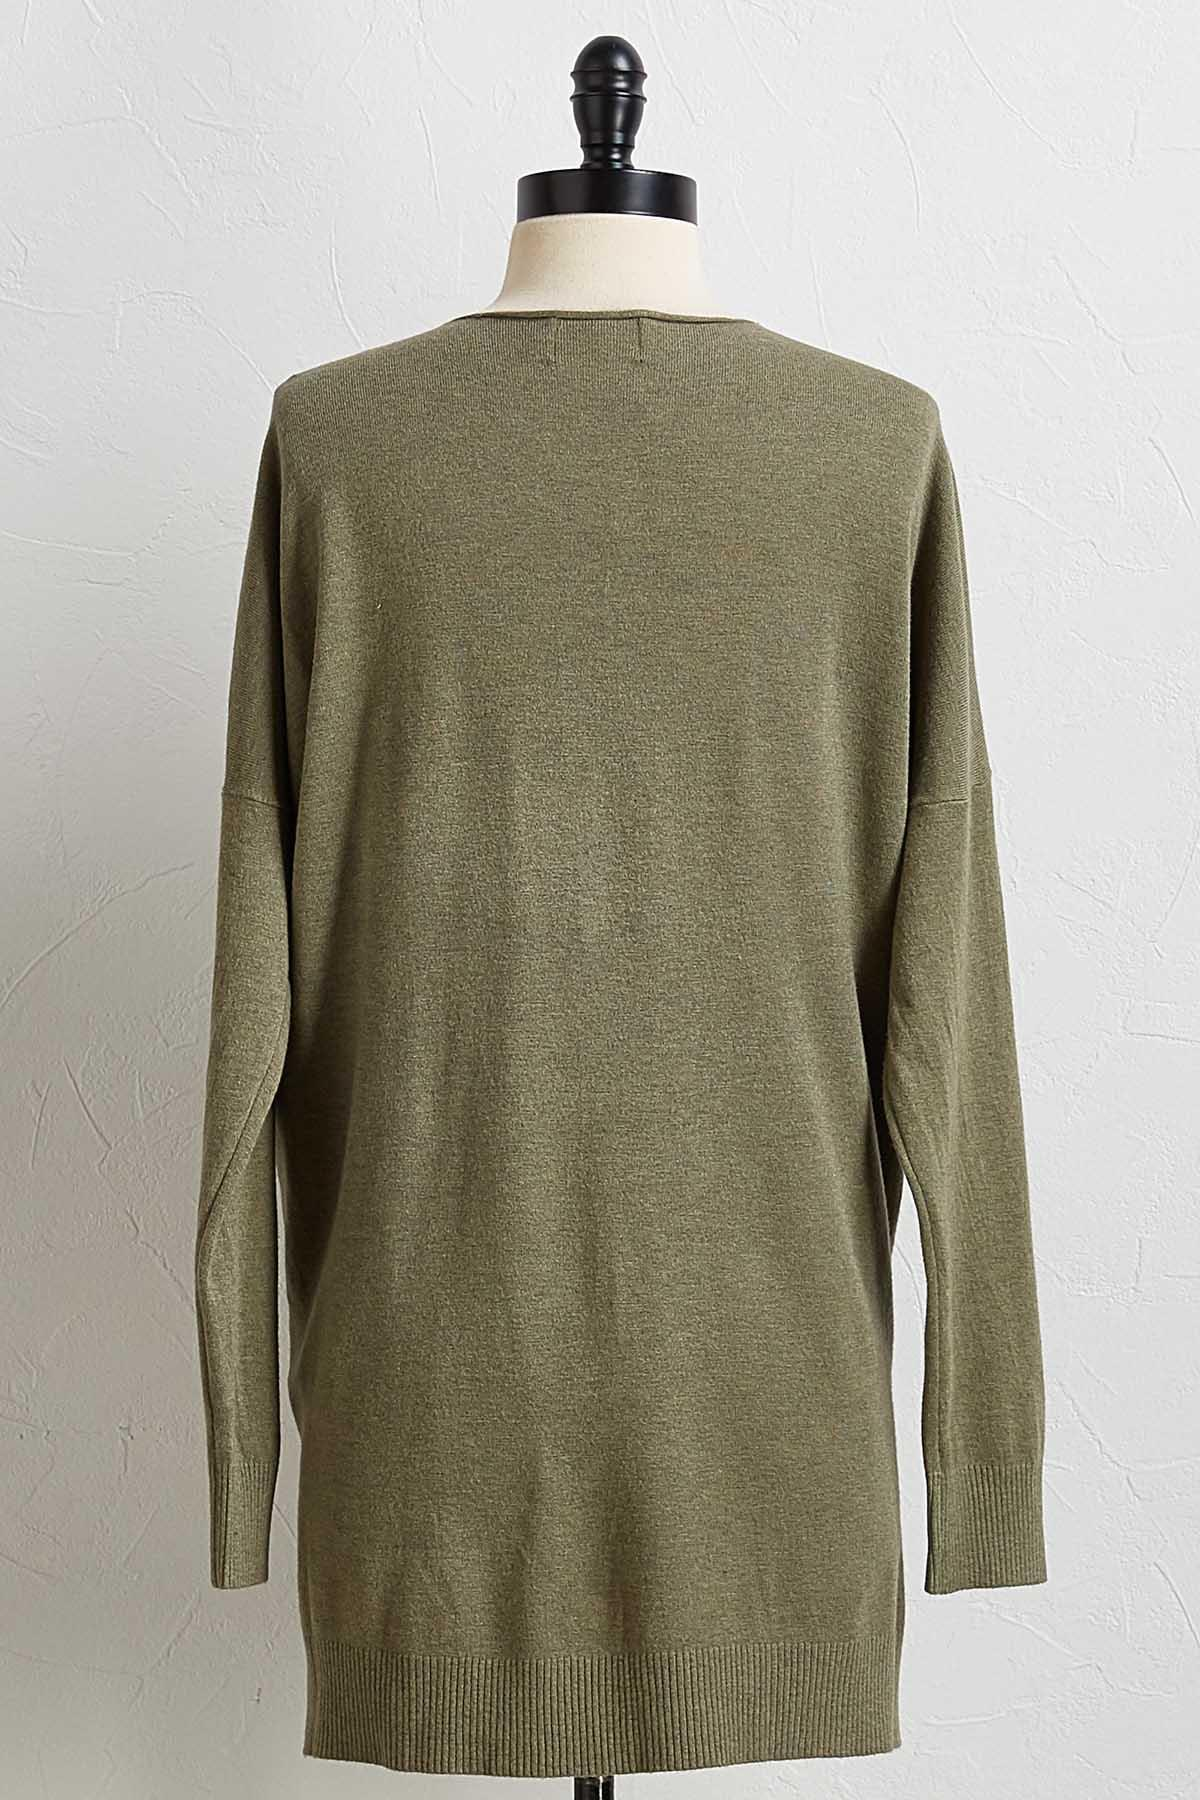 Olive Step Up Tunic Sweater